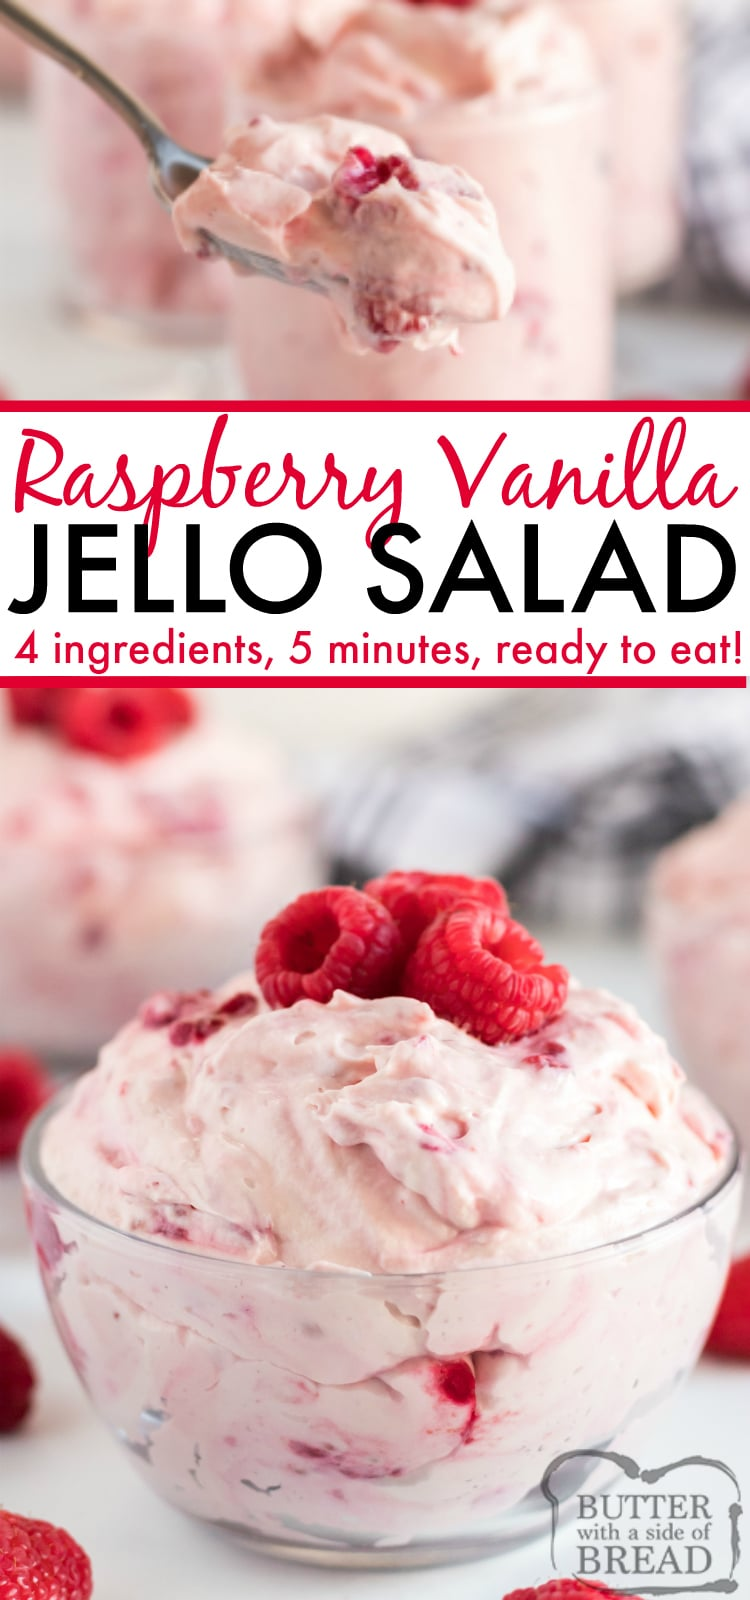 Raspberry Vanilla Jello Salad is one of the easiest jello recipes you will ever make and it is perfect as a side dish or a dessert. This recipe only requires 4 ingredients and 5 minutes to make and then it is immediately ready to serve!